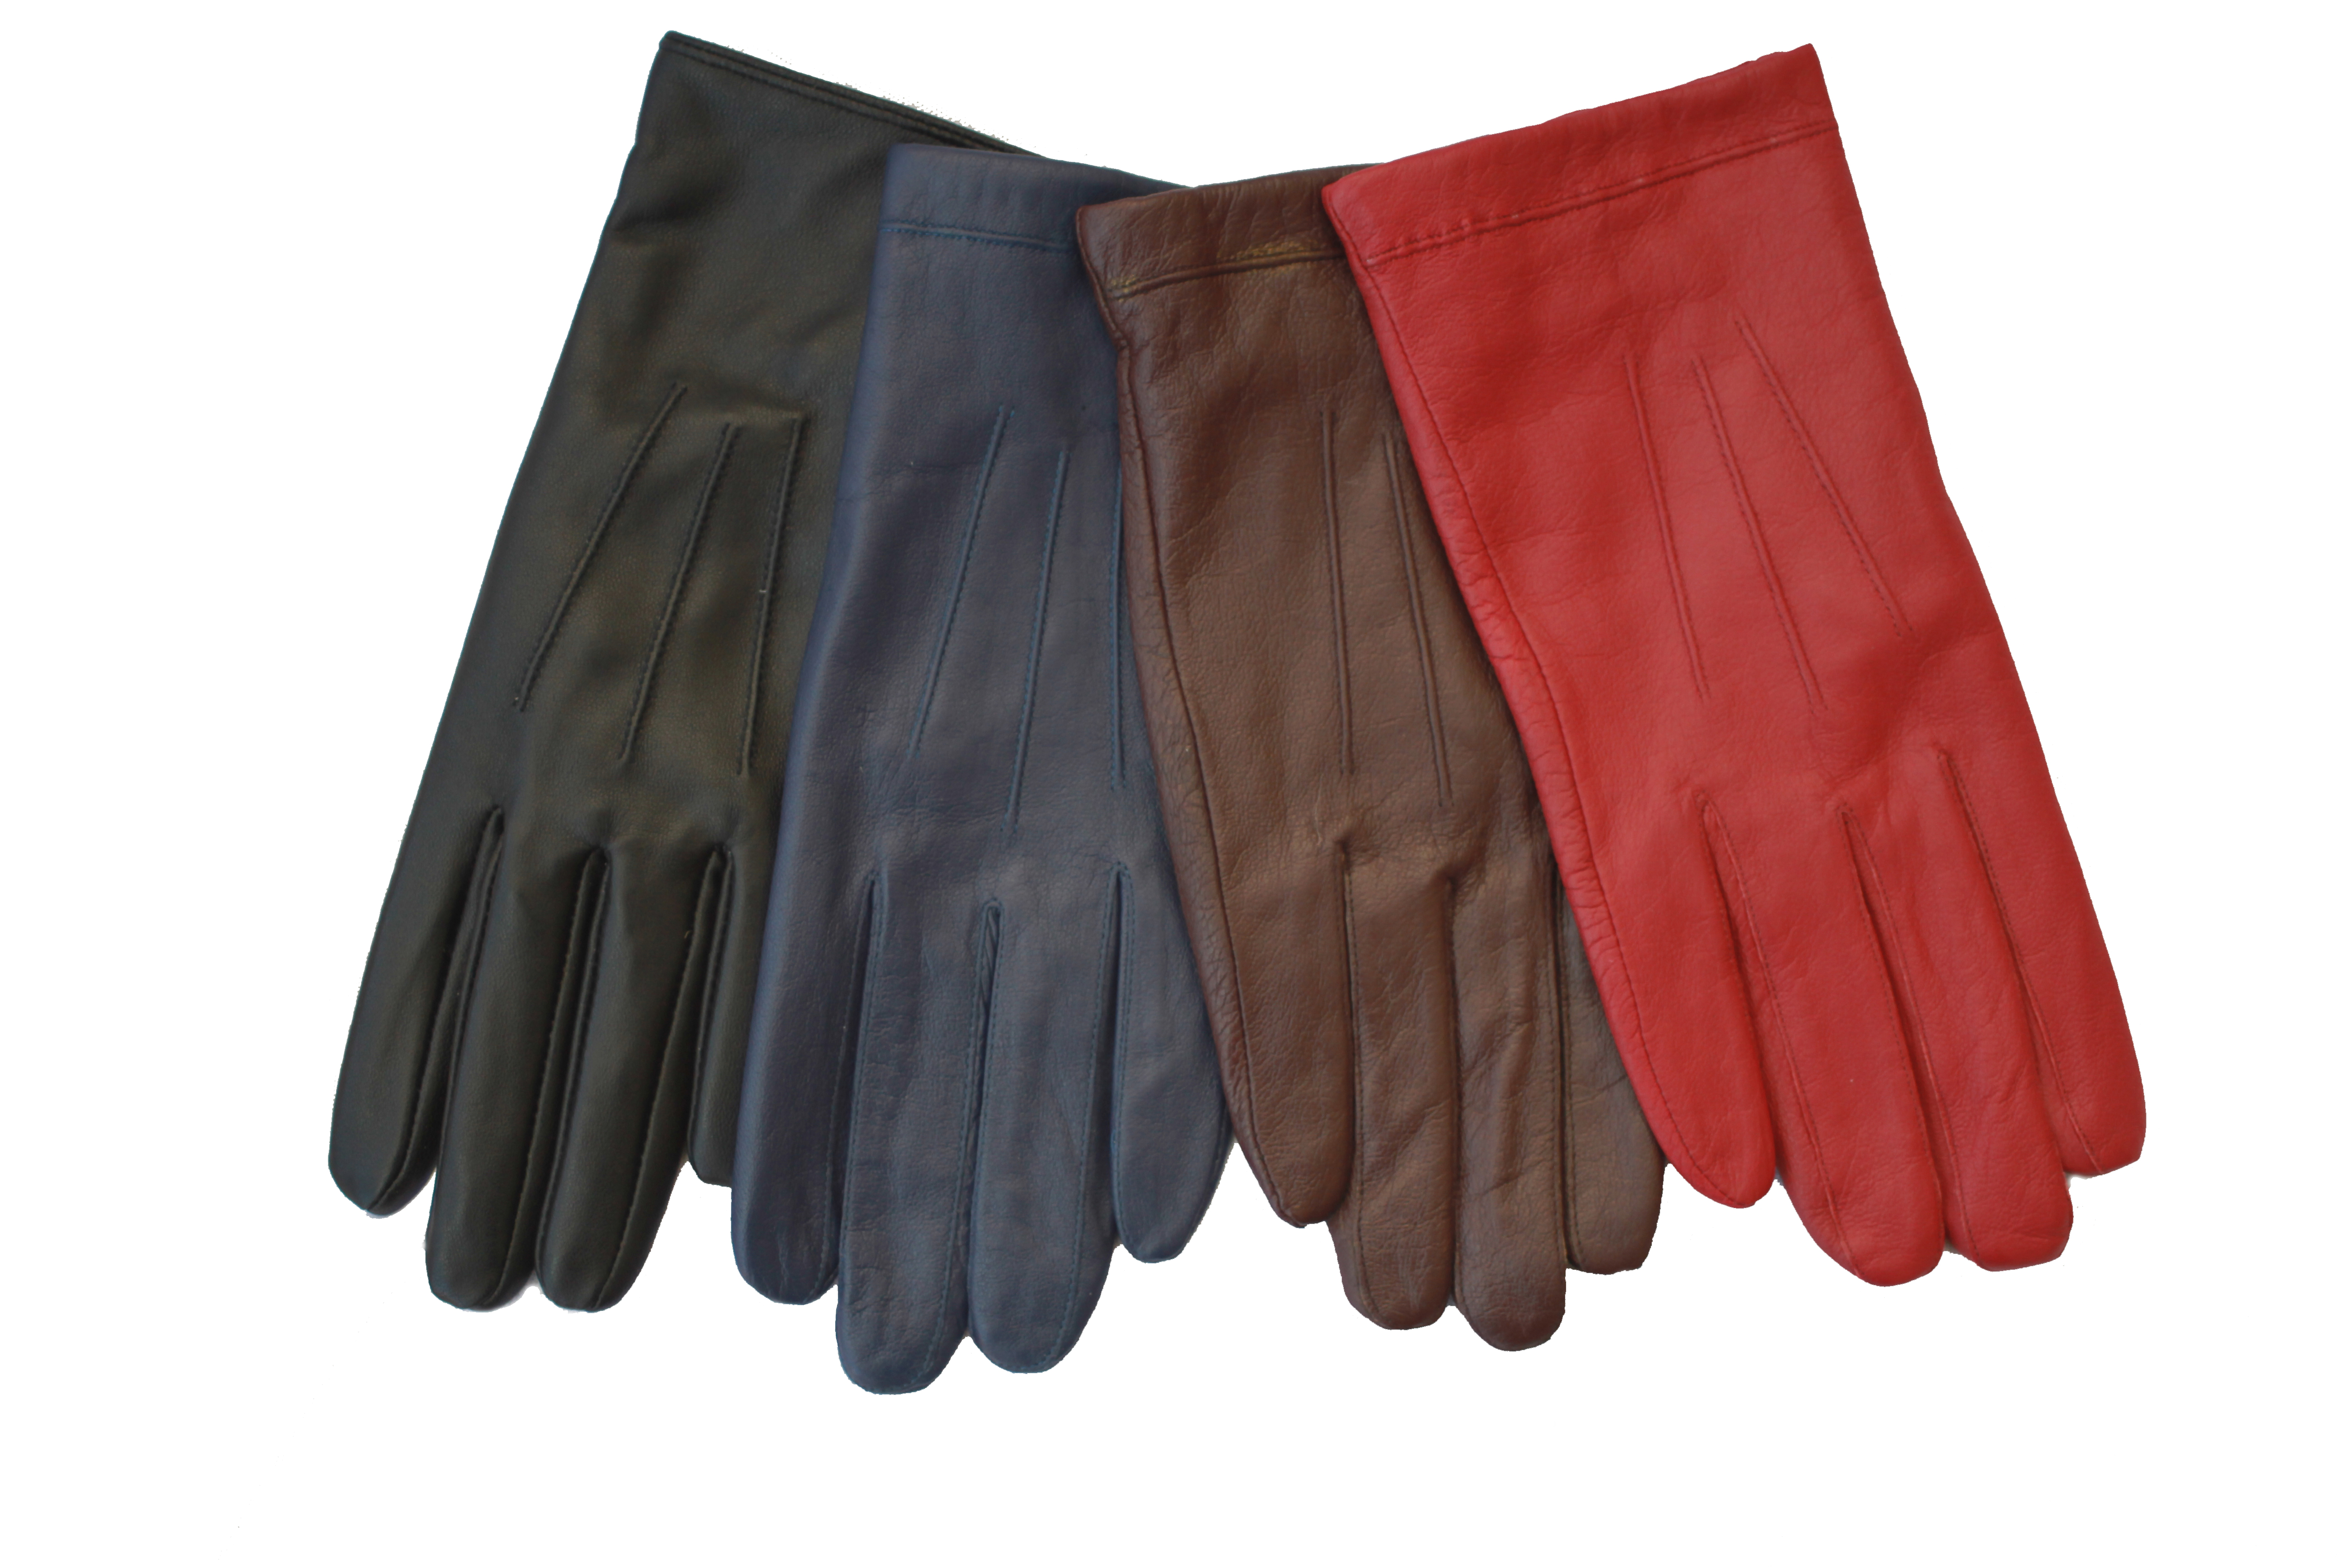 Classic leather gloves – LG1004